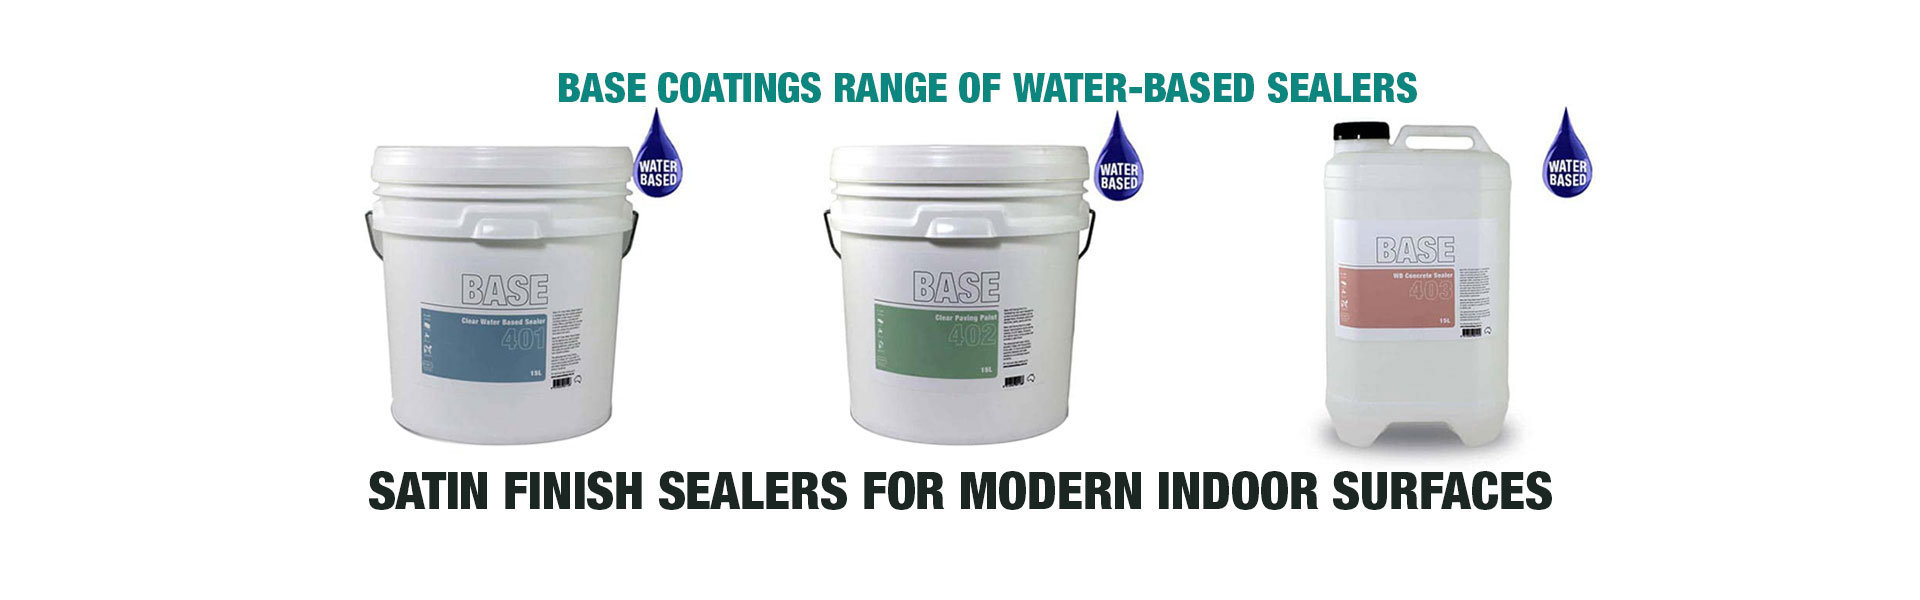 Water-Based Sealers